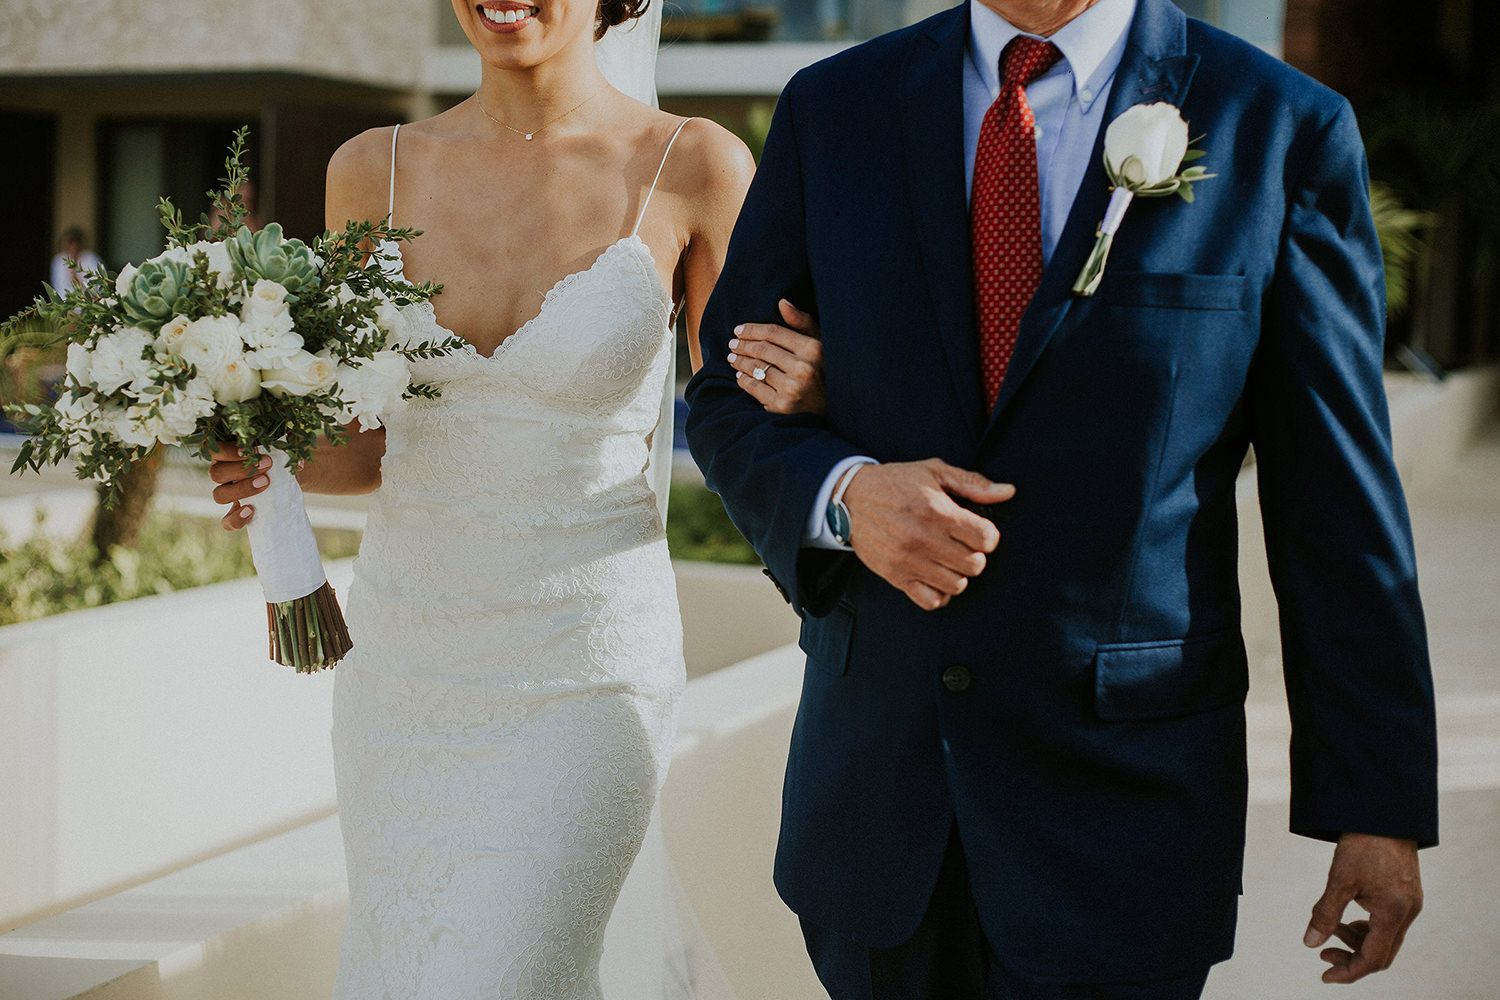 CherylReed_Wedding_Kape_Photography_WeddingPhotography_Mexico_Boda_Fotografia_Royalton_Hideway_Cancun_RivieraMaya_PlayadelCarmen_Beach_232FB_BLOG.jpg